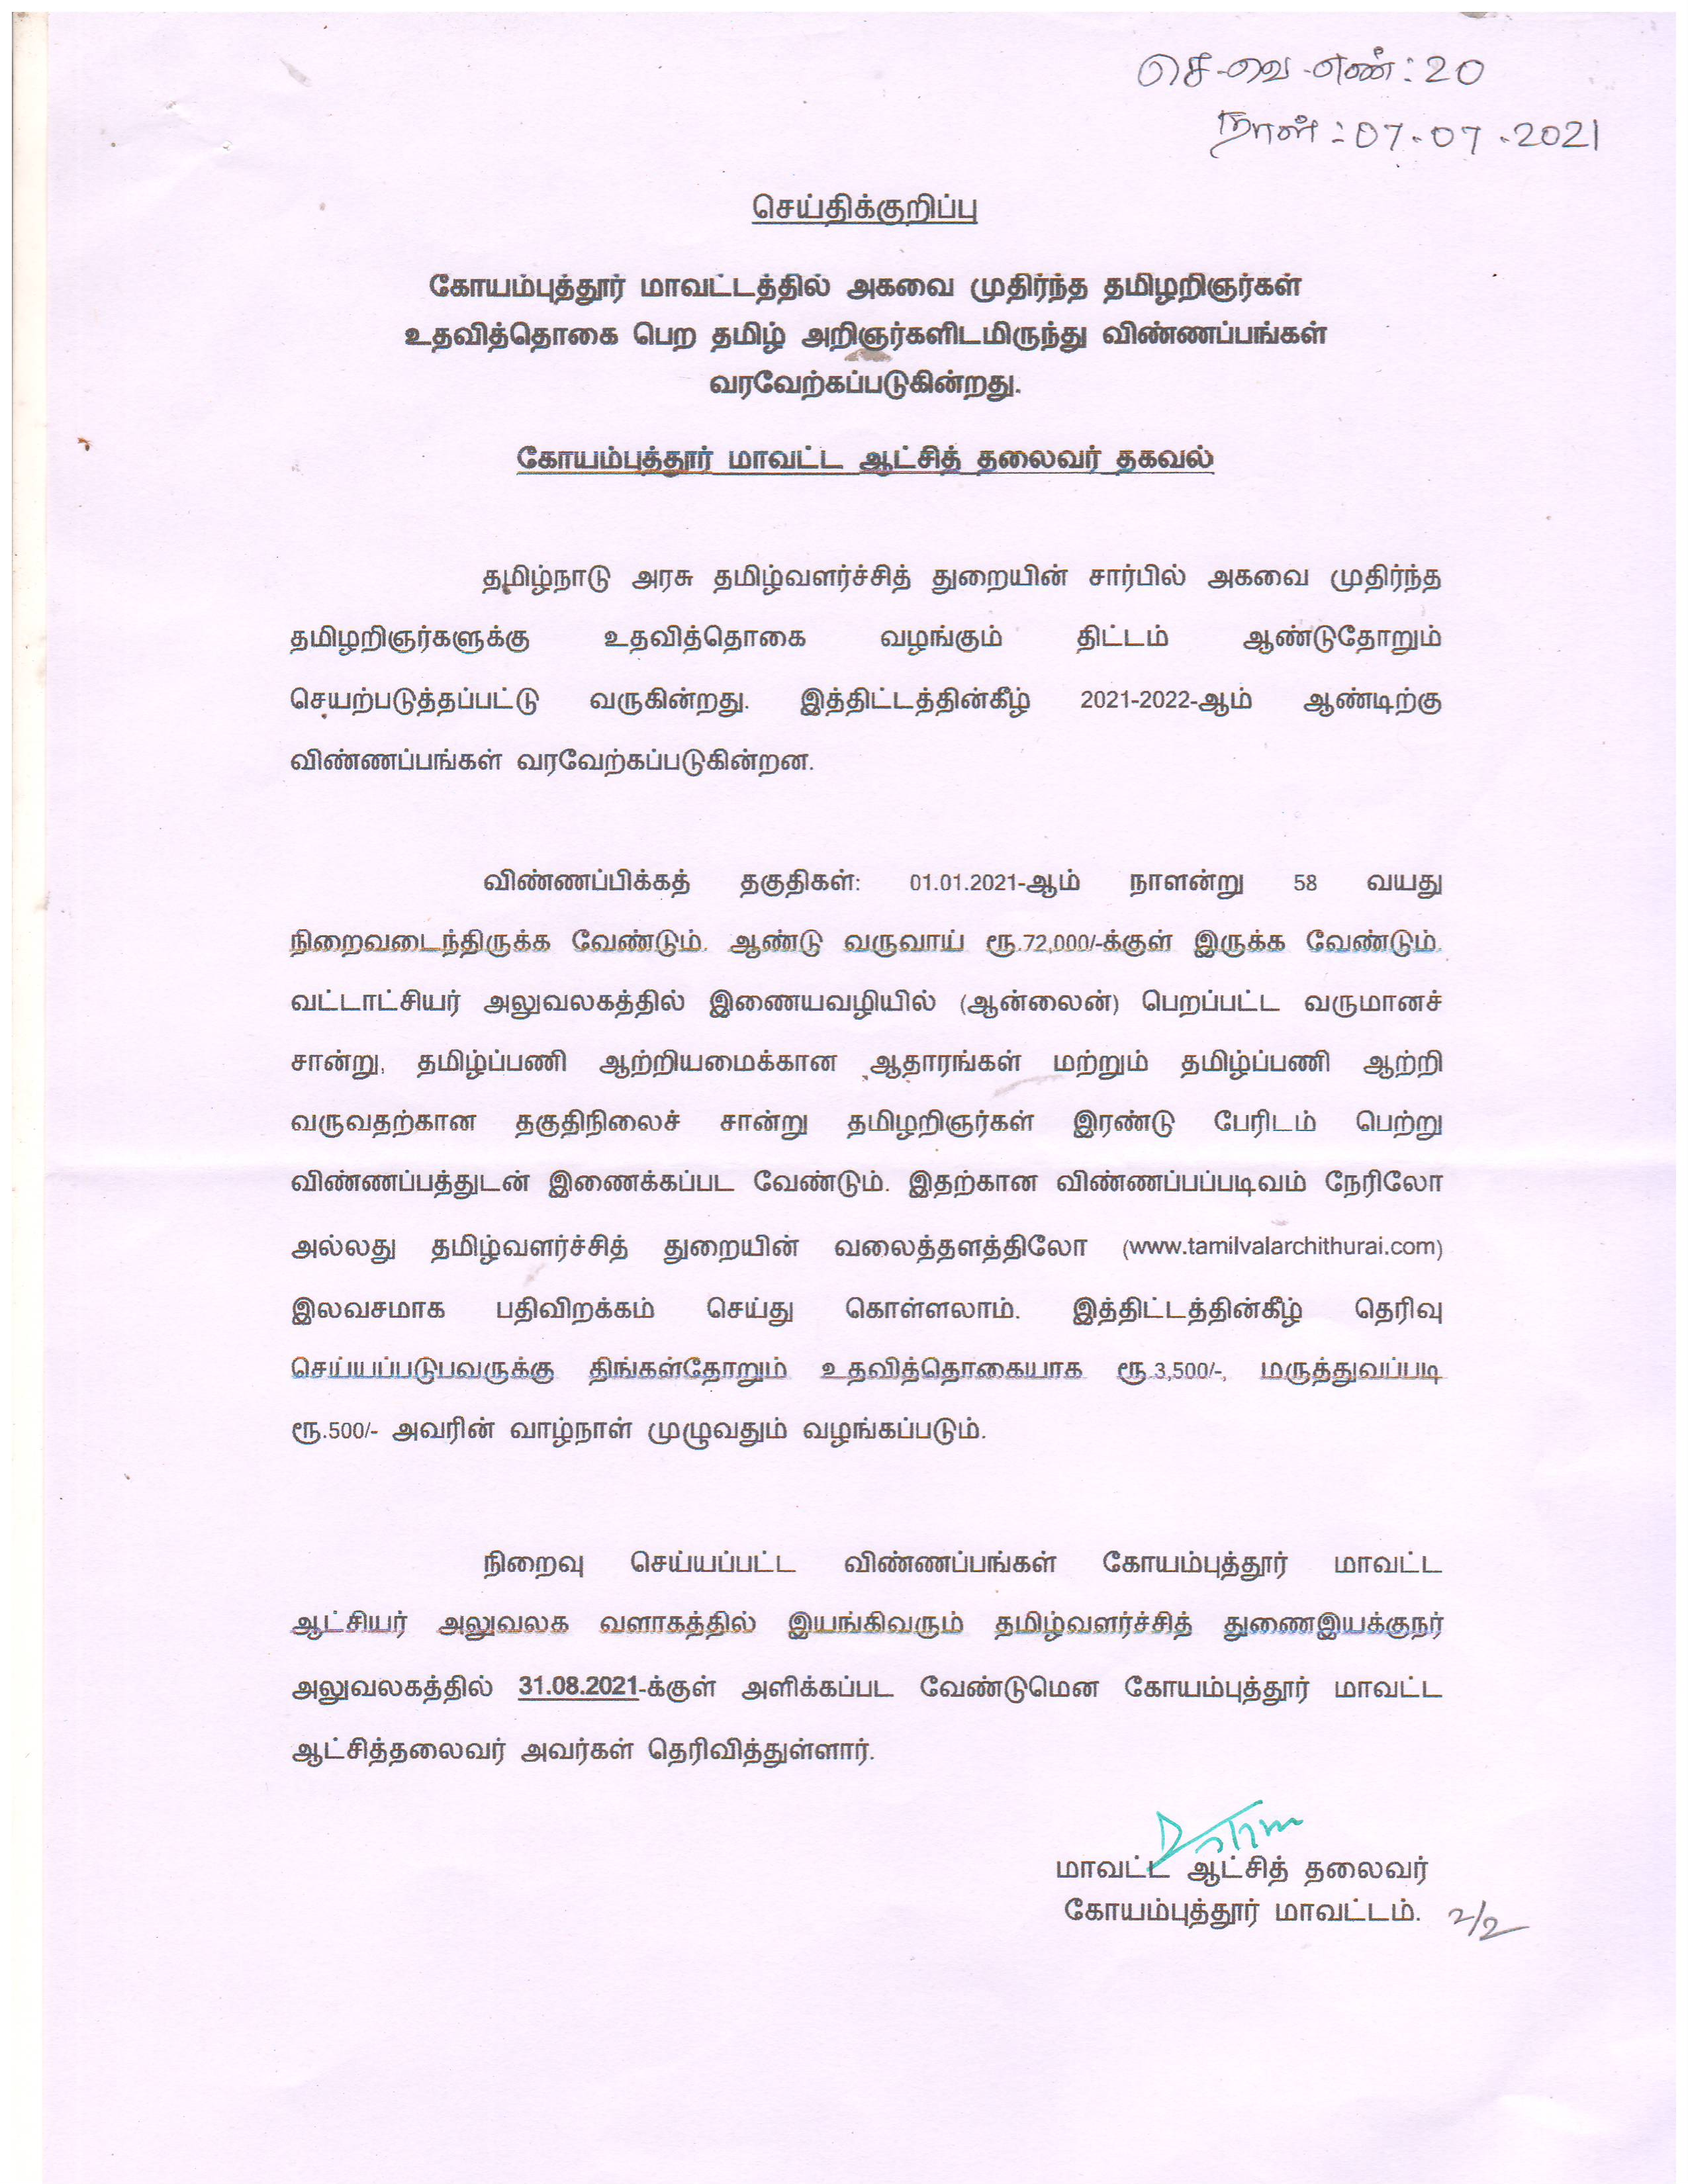 Govt. Tamil Nadu, Tamil Development Department application invited from Tamil Scholars for getting monthly Stipend. Last Date for Submission of filled application : 31.08.2021